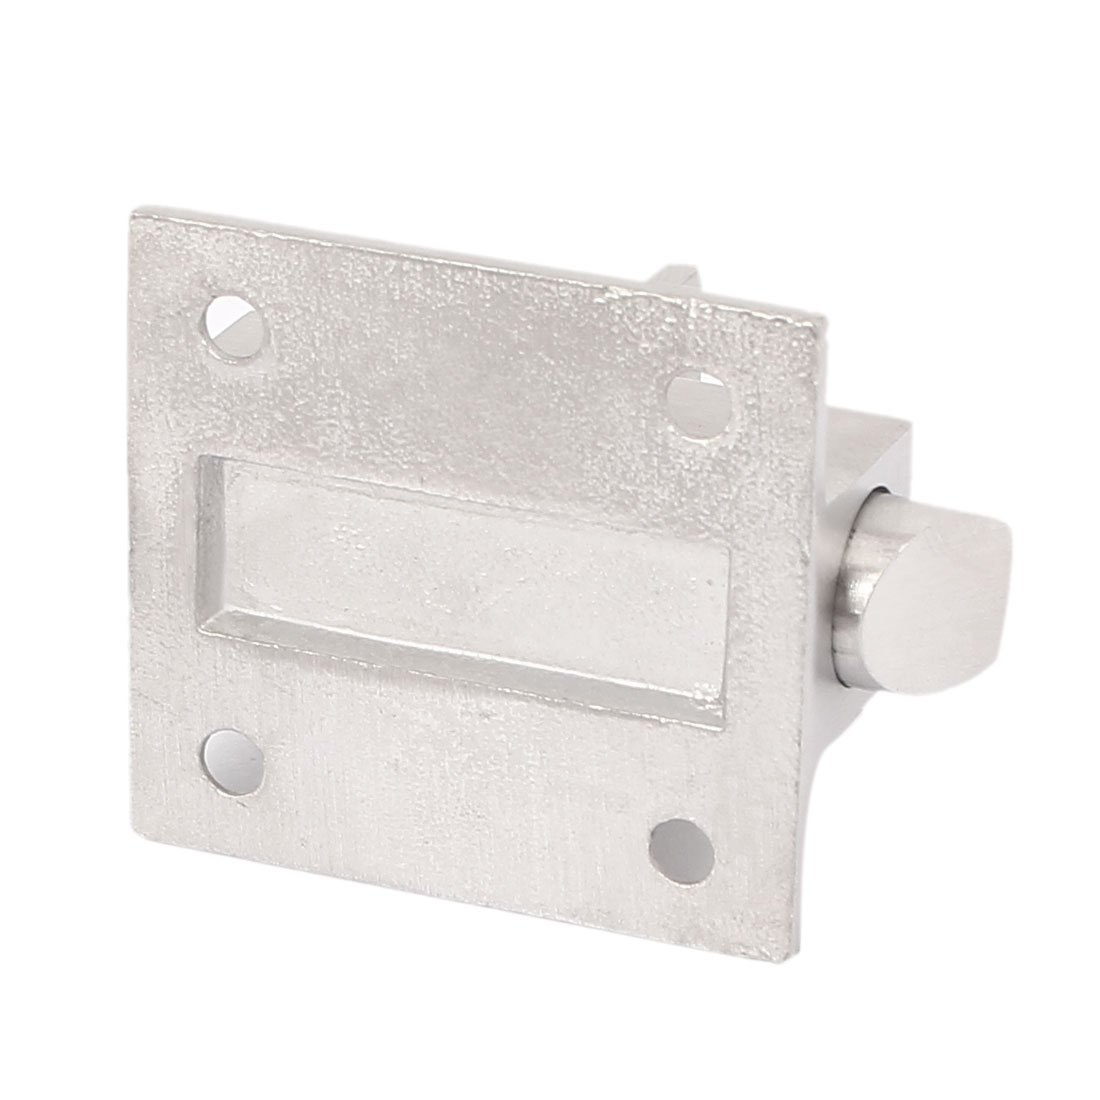 uxcell Door Gate Spring Loaded Stainless Steel Automatic Barrel Bolt Latch Silver Tone SYNCTEA010842